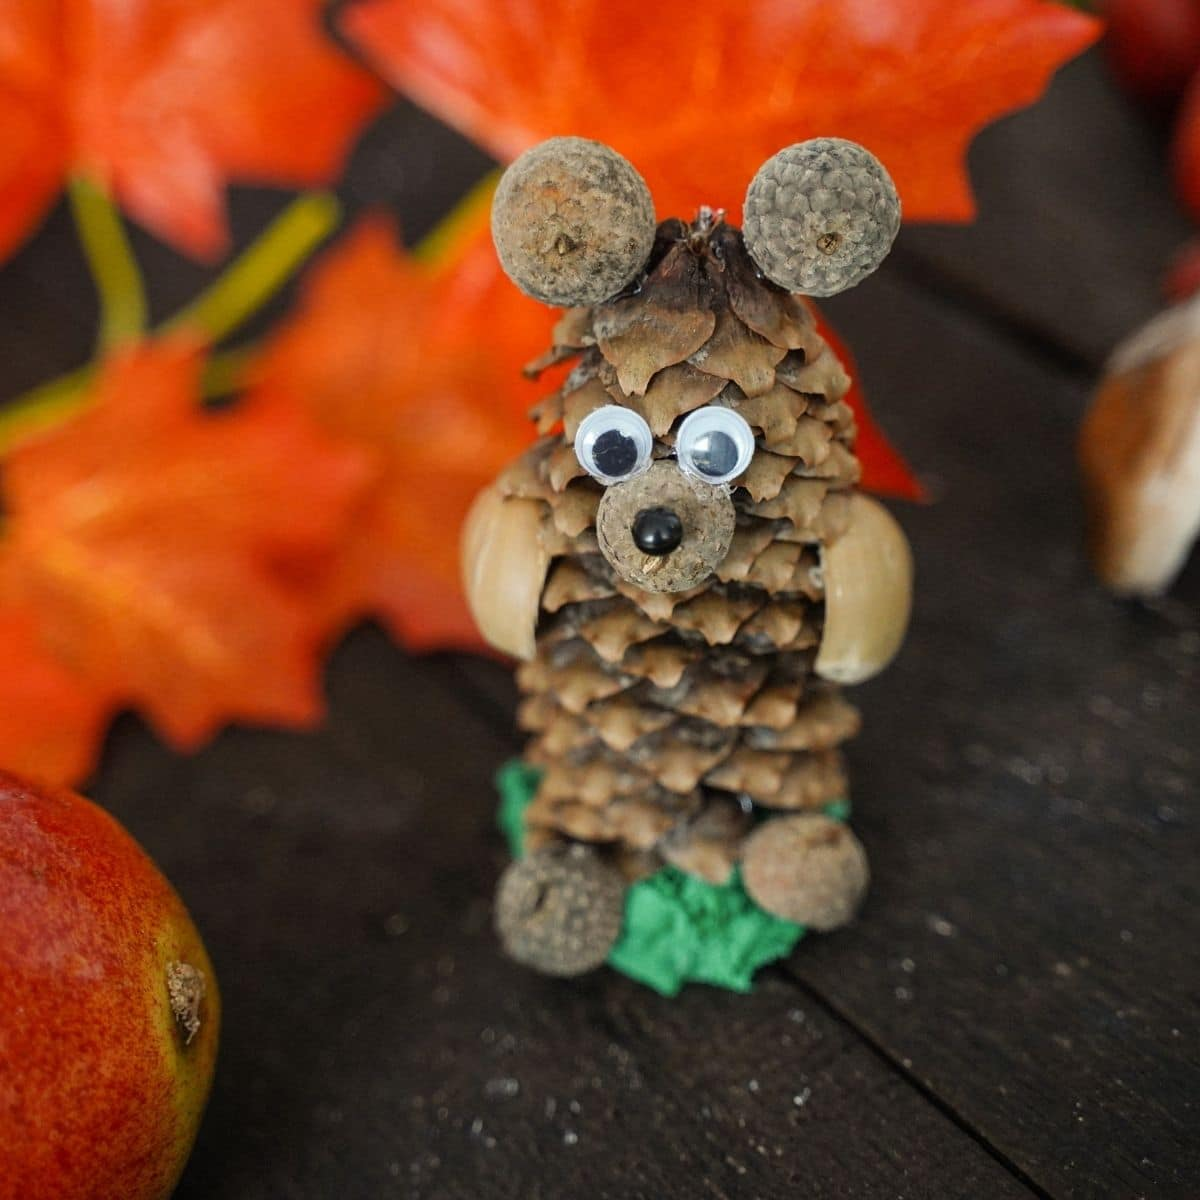 pinecone bear on wood table by fake leaves